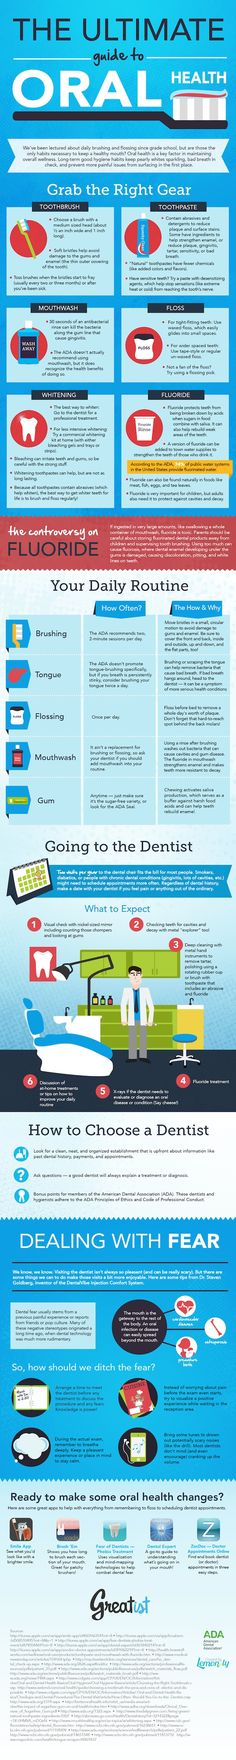 I've had root treatment because I didn't take care of my teeth - trust me, brushing and flossing regularly is a must! Low Income Dental Insurance